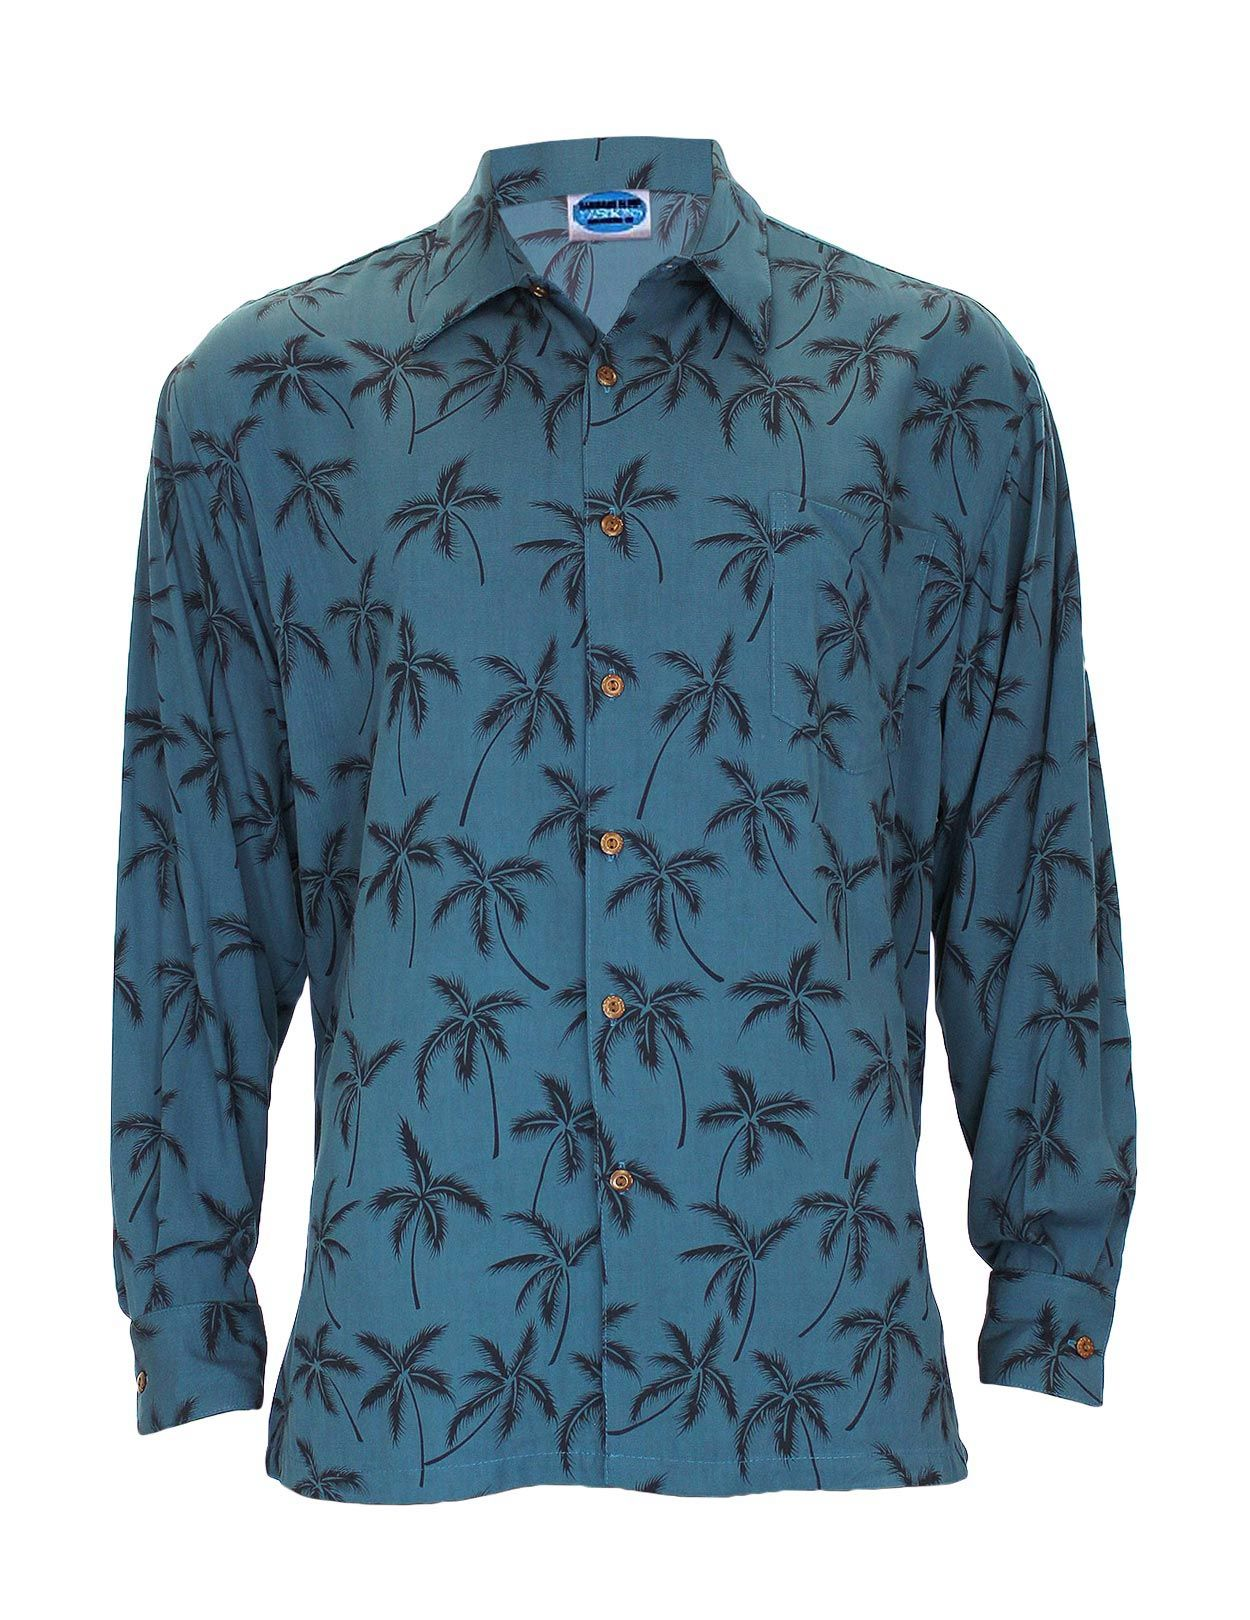 ef41904f2 Check out the deal on Teal Blue Rayon Long Sleeves Tropical Palms Aloha  Shirt - Hawaiian Gala Design at Shaka Time Hawaii Clothing Store  #hawaiianshirt ...